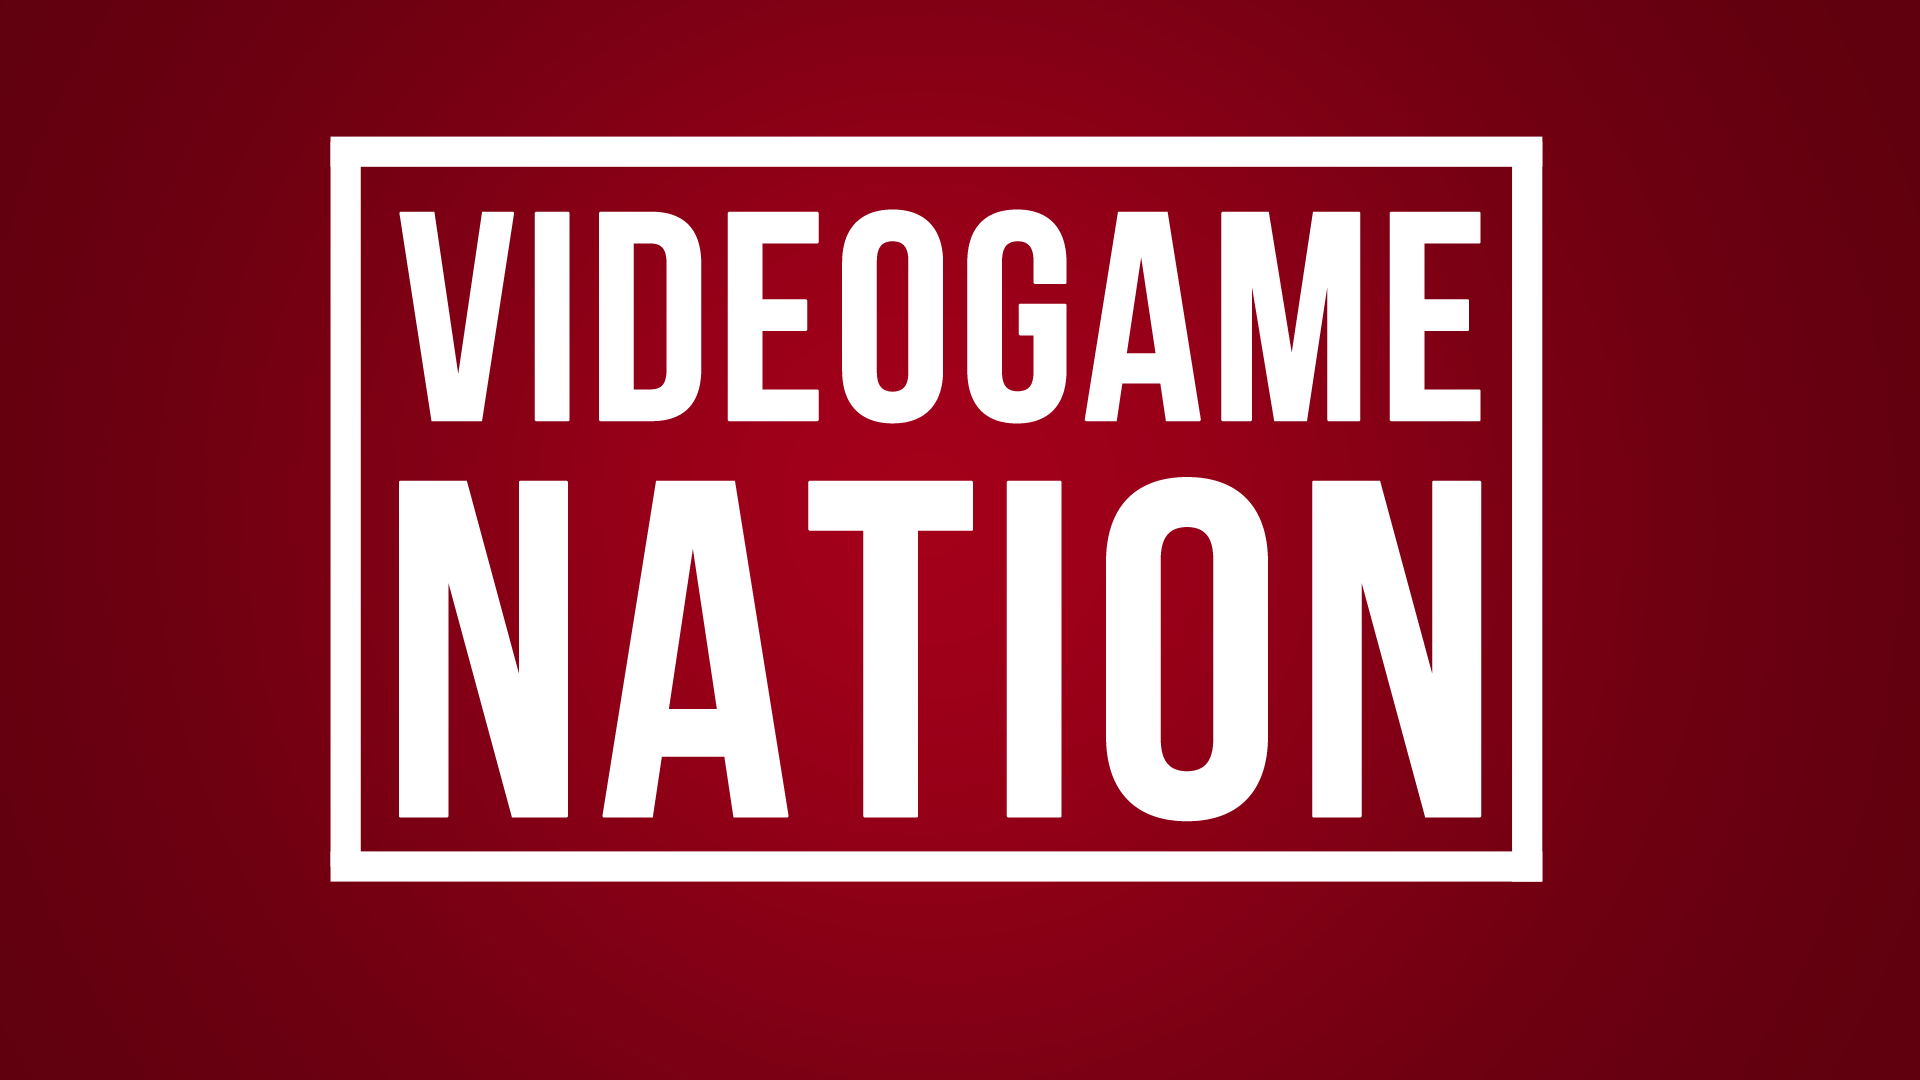 Videogame Nation logo